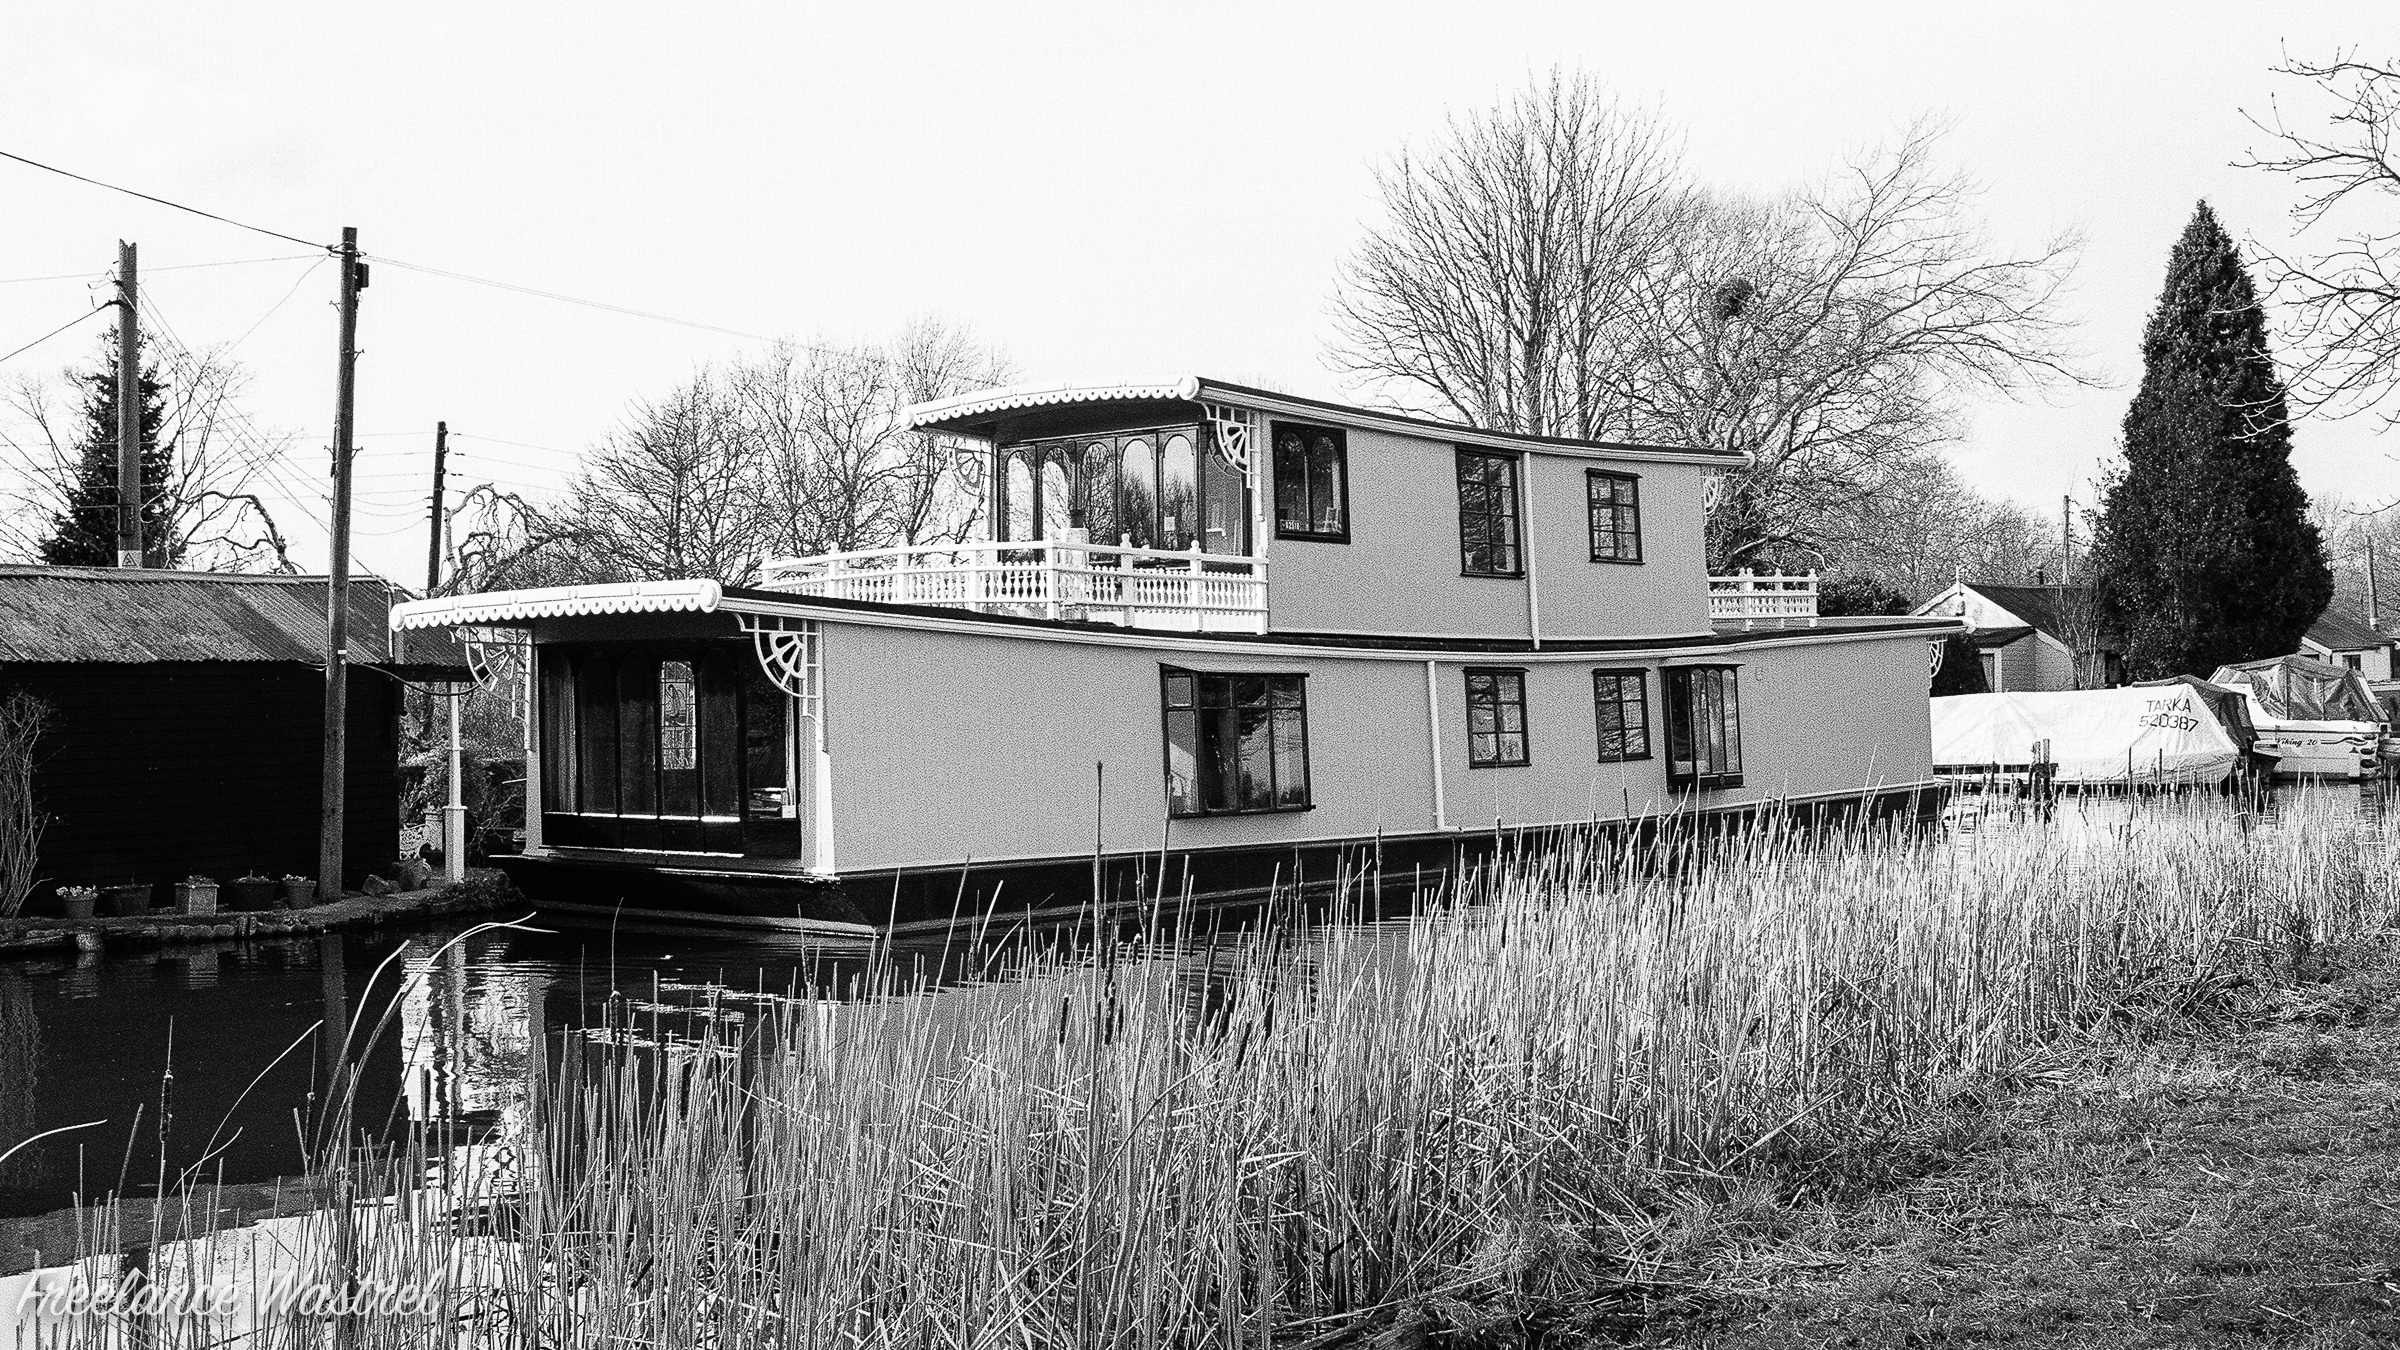 Houseboat on the Erewash Canal, February 2018